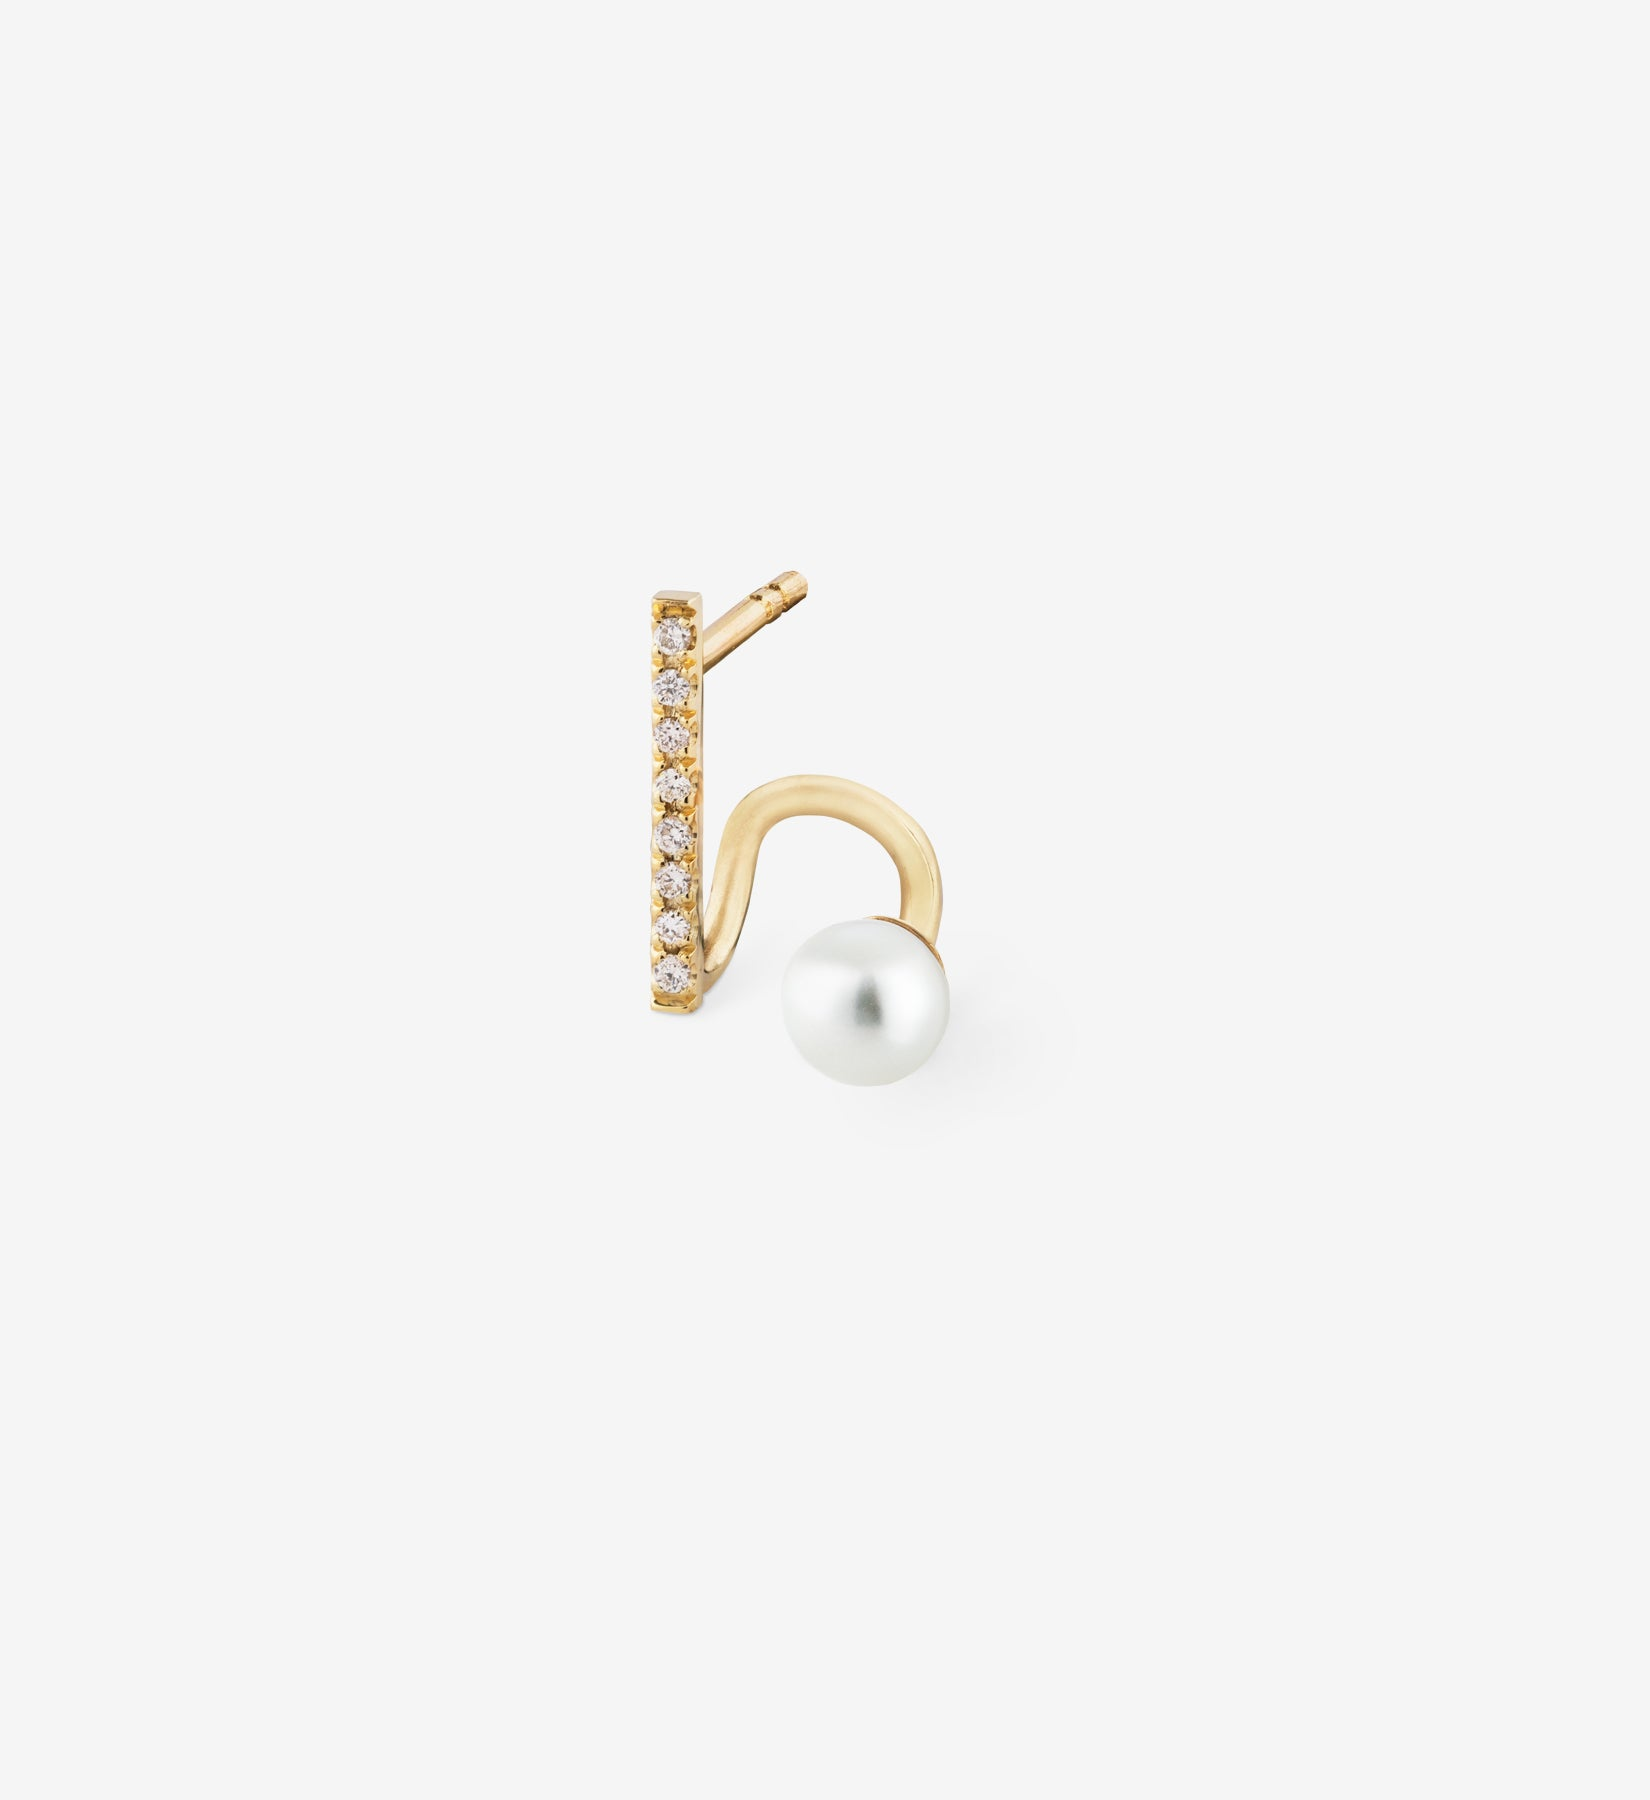 Floating Pearl Diamond Spiral Earring 05 - Single